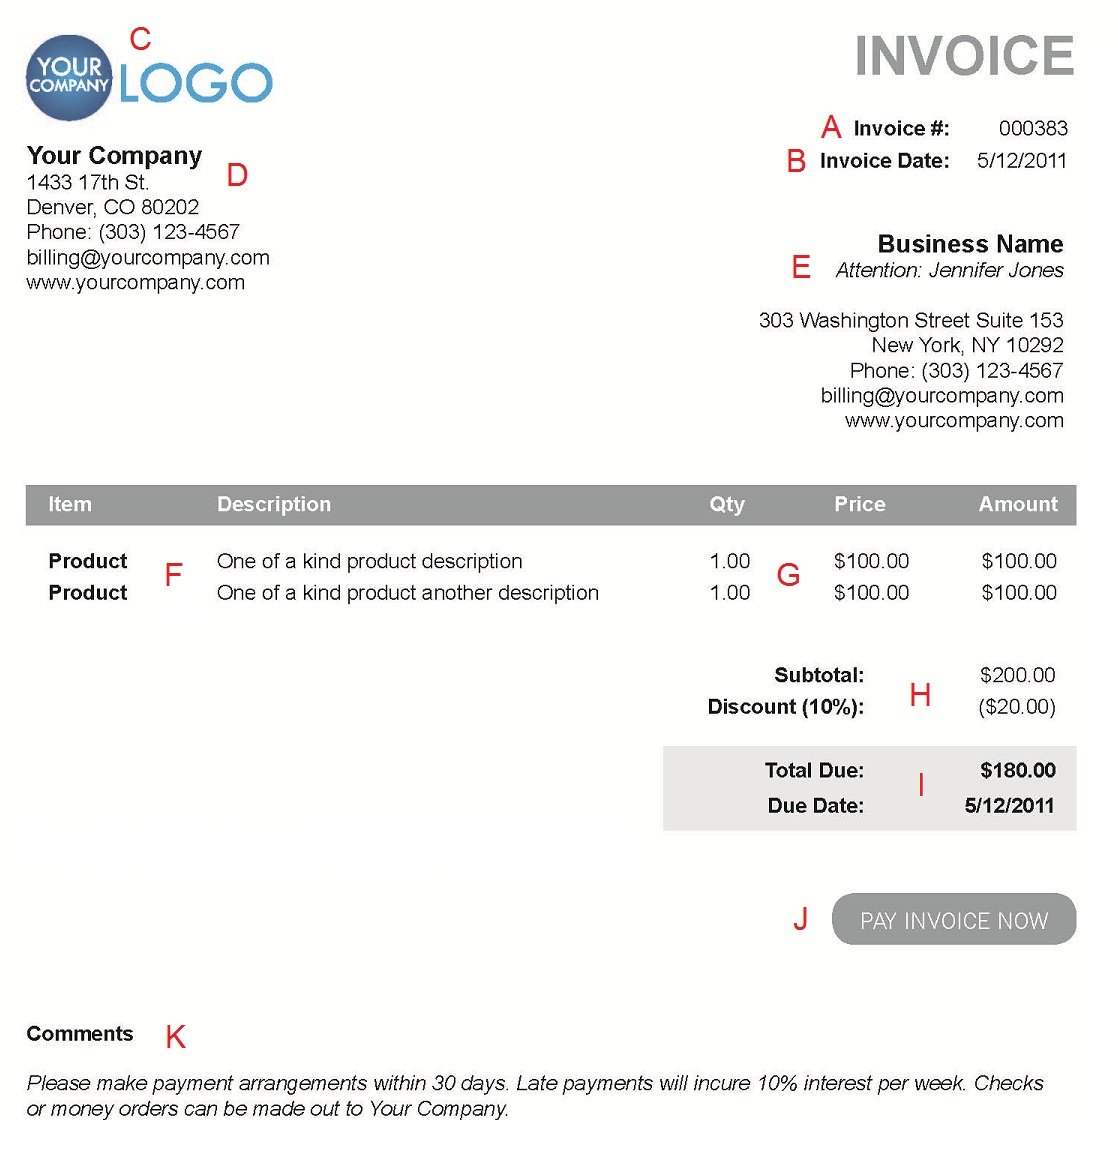 Indianaparanormalus  Pleasant The  Different Sections Of An Electronic Payment Invoice With Glamorous A  With Appealing New Mexico Gross Receipts Tax Rate Also American Airlines Ticket Receipt In Addition How To Create A Receipt And Taxi Cab Receipts Printable As Well As Receipt Scanning Additionally Confirm Receipt Of This Email From Paysimplecom With Indianaparanormalus  Glamorous The  Different Sections Of An Electronic Payment Invoice With Appealing A  And Pleasant New Mexico Gross Receipts Tax Rate Also American Airlines Ticket Receipt In Addition How To Create A Receipt From Paysimplecom